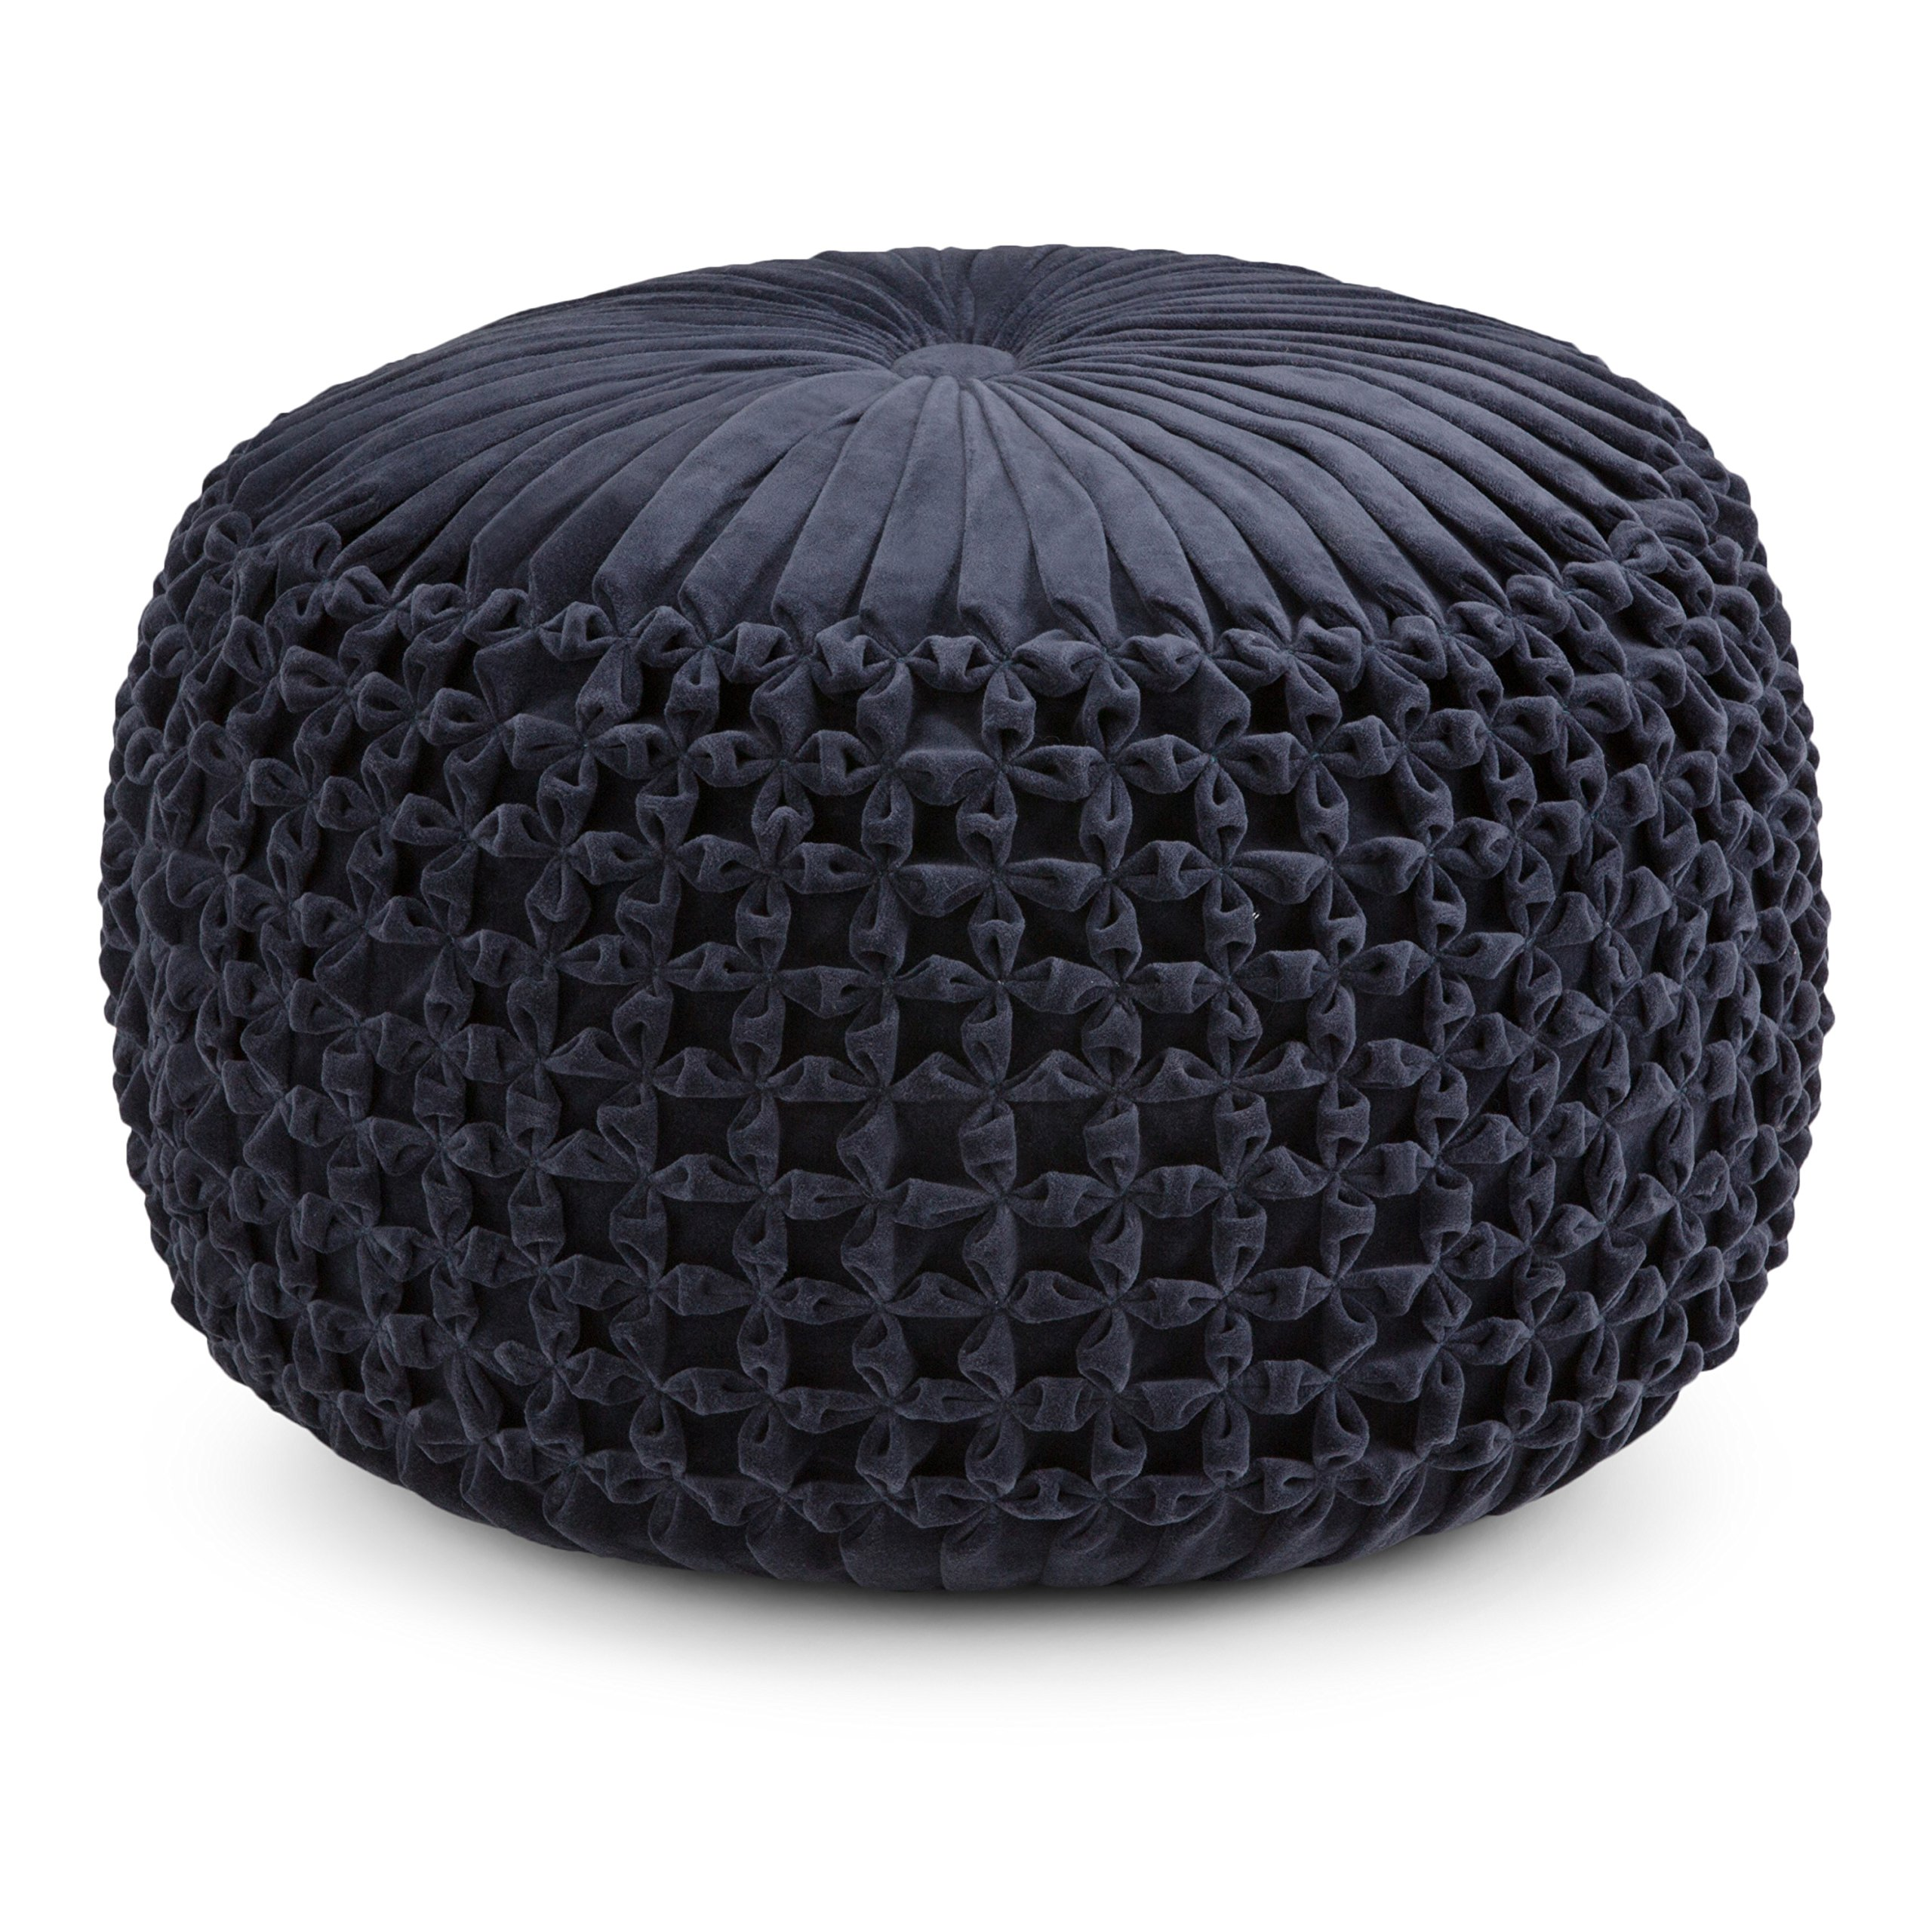 Simpli Home AXCPF-24 Renee Transitional Round Pouf in Navy Velvet by Simpli Home